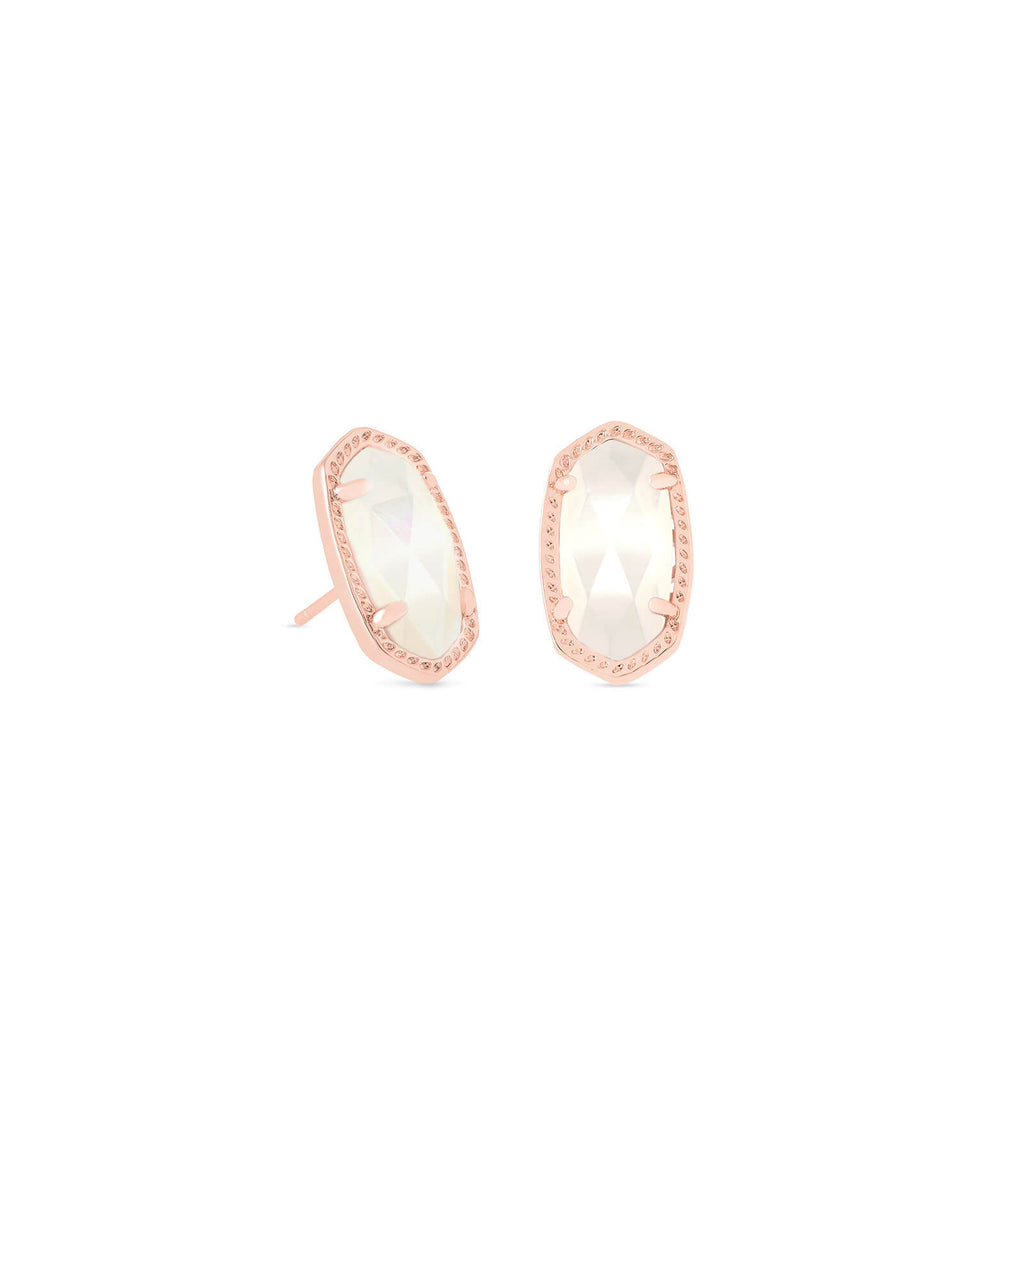 Kendra Scott Ellie Rose Gold Stud Earrings in Ivory Pearl - Fly Boutique